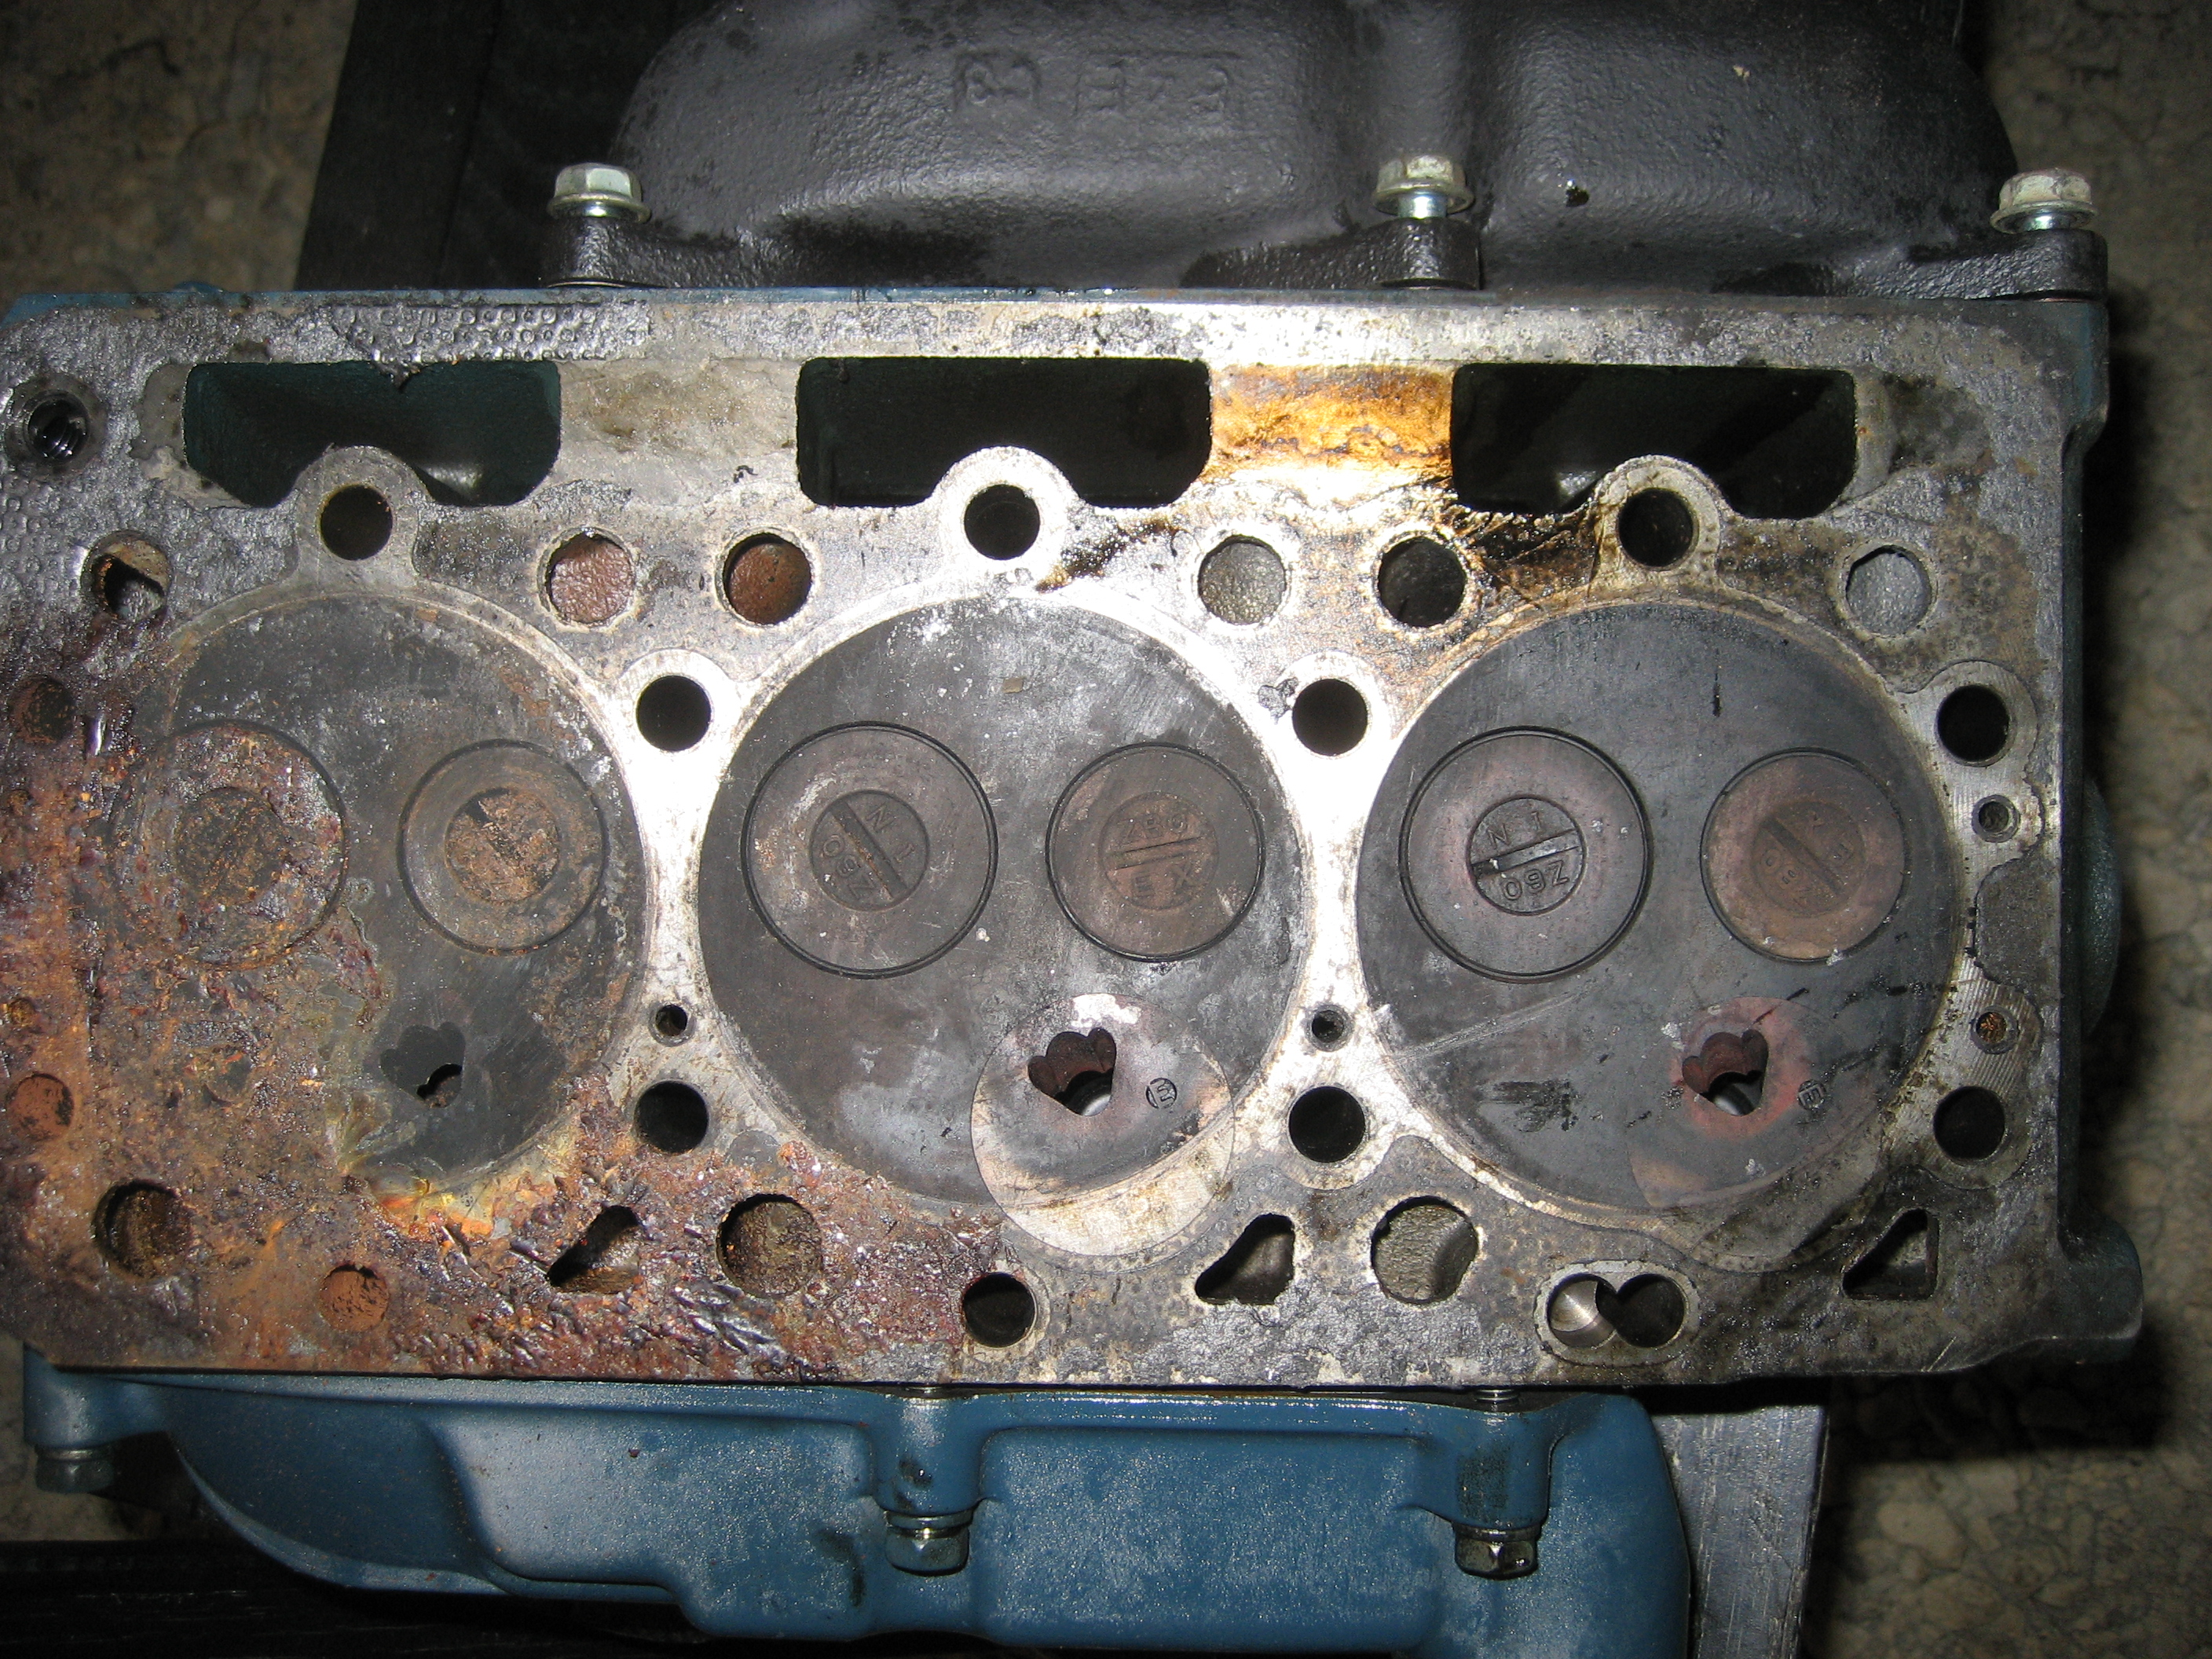 File:Cylinder head of a small Kubota indirect injection